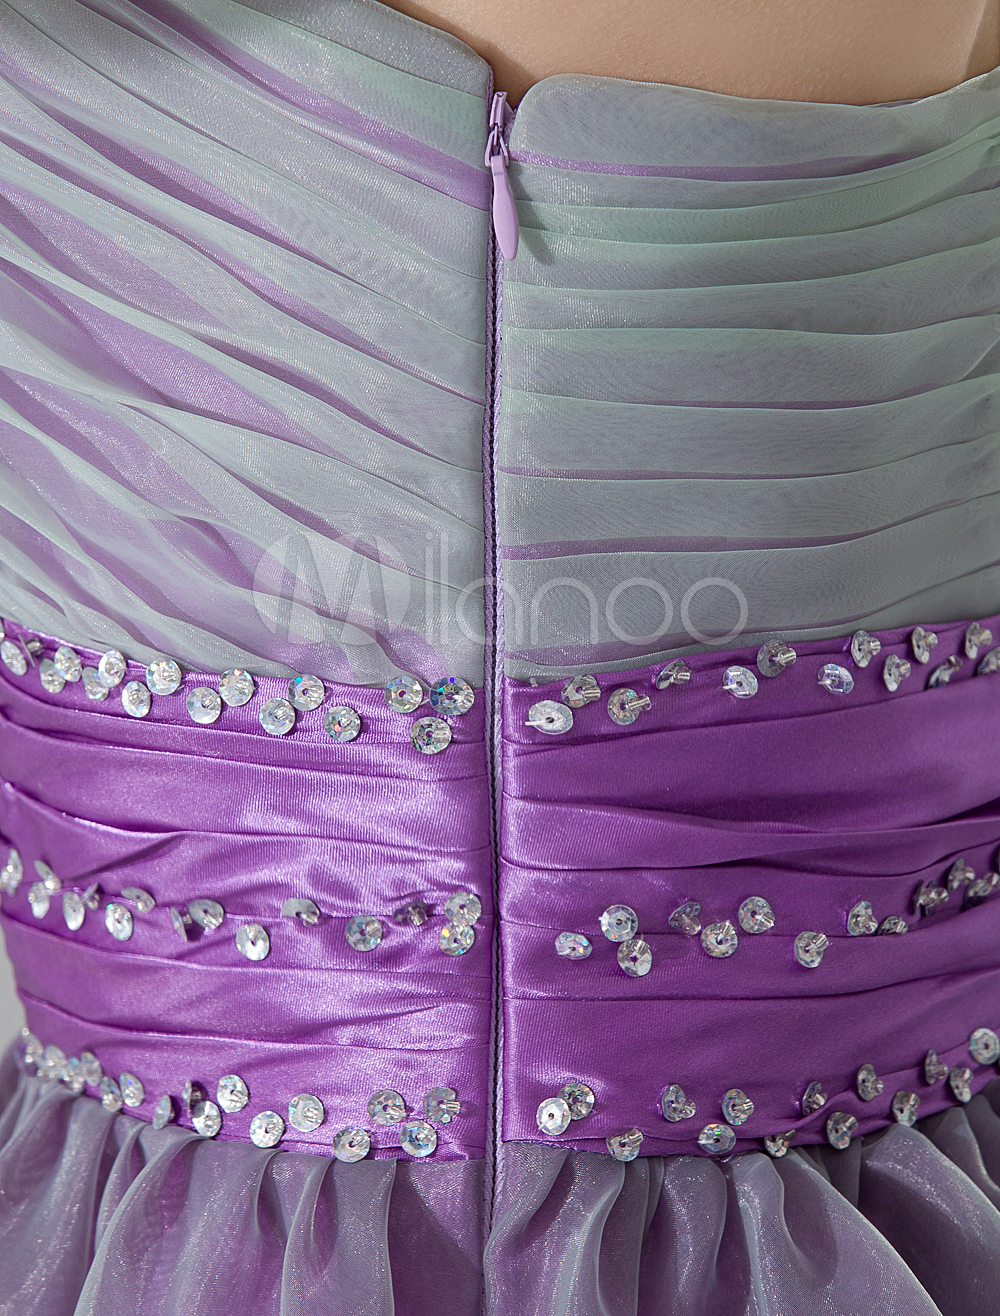 China Wholesale Dresses - Grape Purple One-Shoulder A-line Flower Organza Satin Homecoming Dress